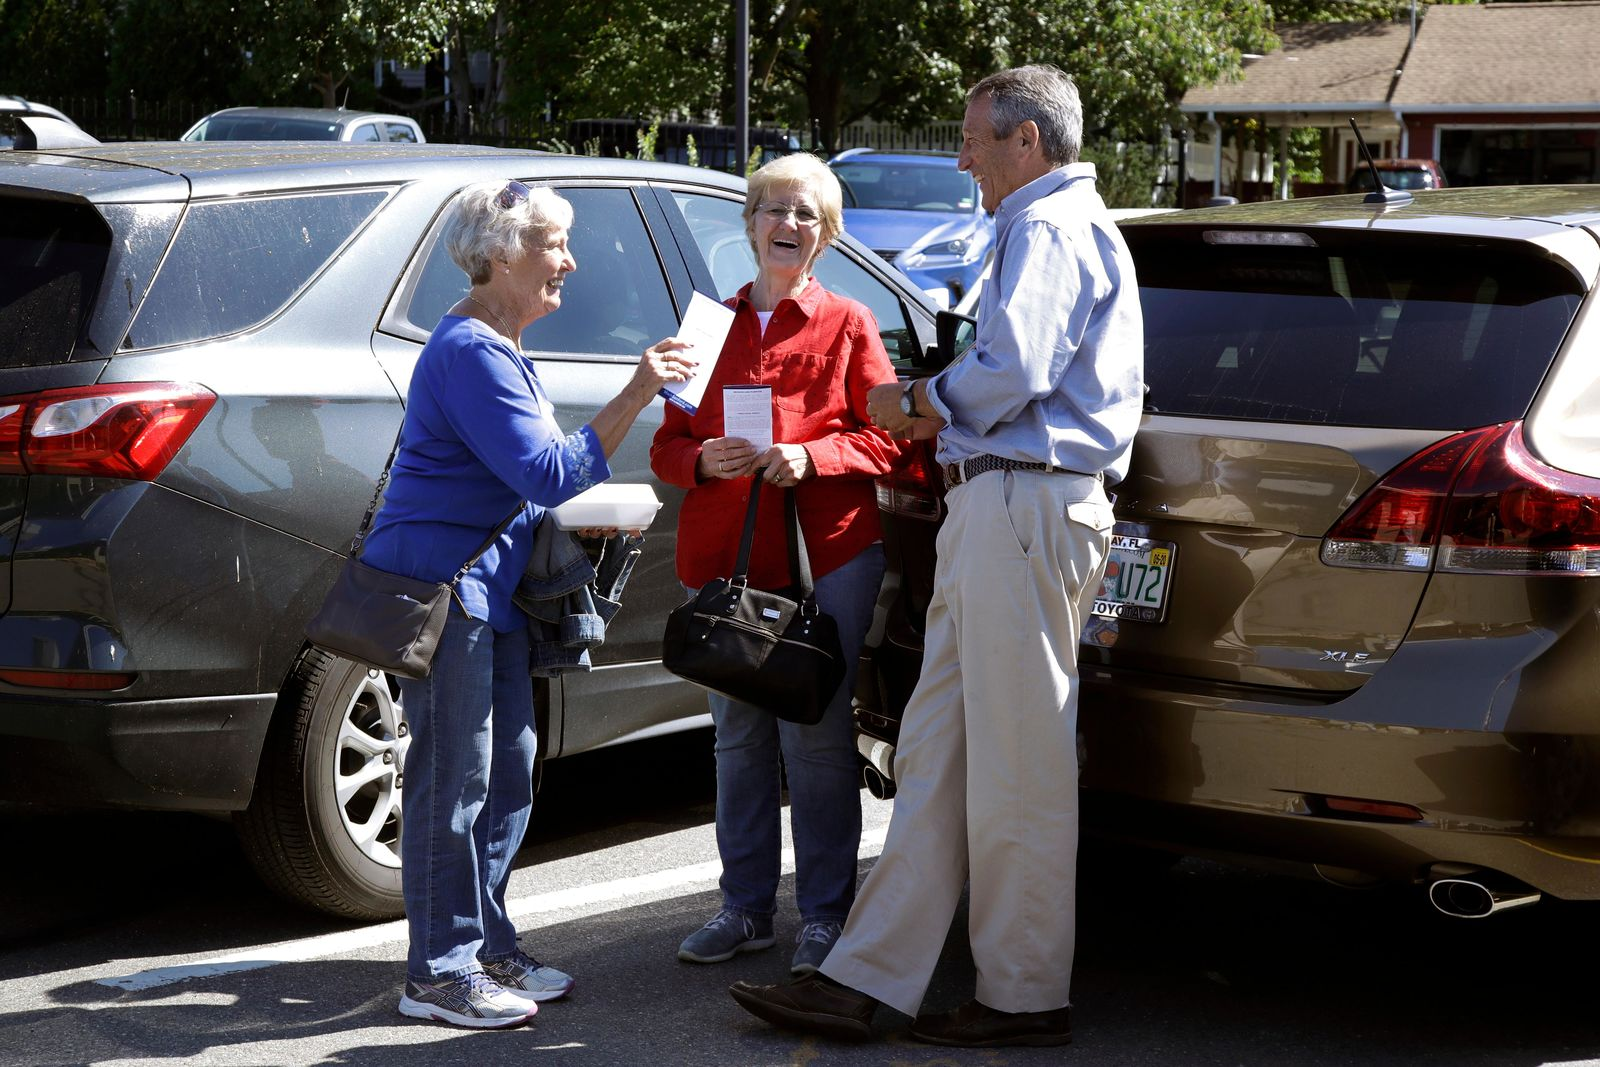 Republican presidential candidate, former South Carolina Gov. Mark Sanford talks with customers in the parking lot of the Puritan Backroom restaurant, during a campaign stop, Thursday, Sept. 19, 2019, in Manchester, N.H. (AP Photo/Elise Amendola)